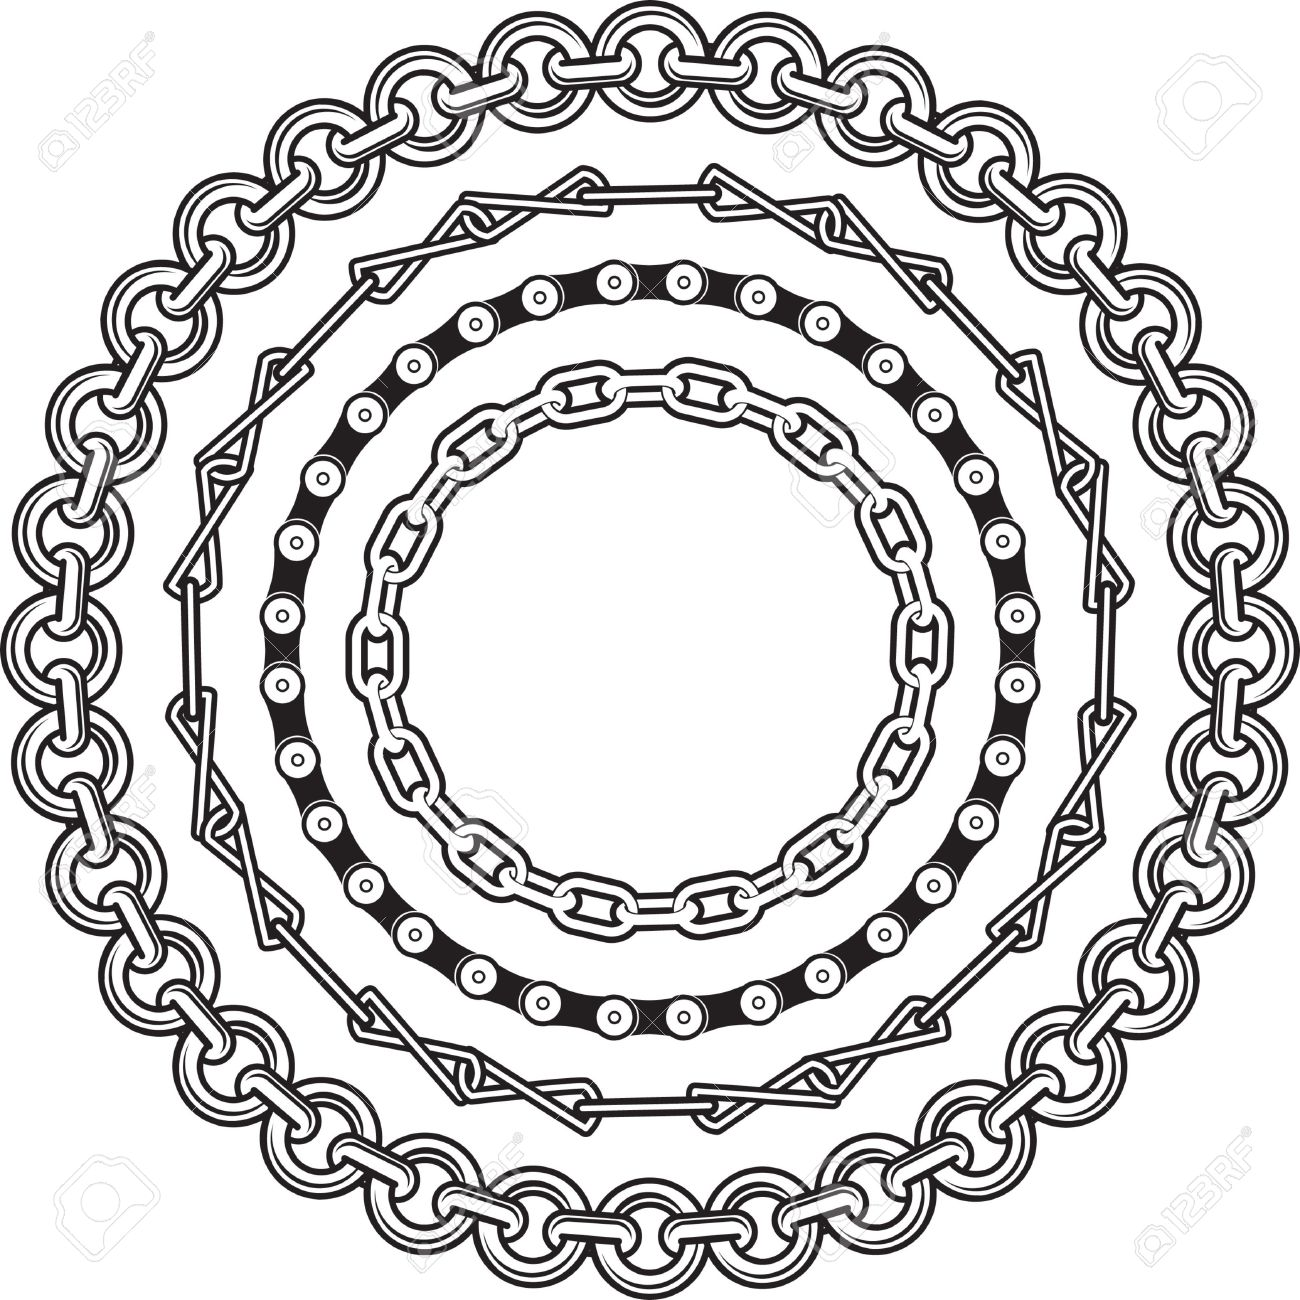 Chain Rings Royalty Free Cliparts, Vectors, And Stock Illustration.